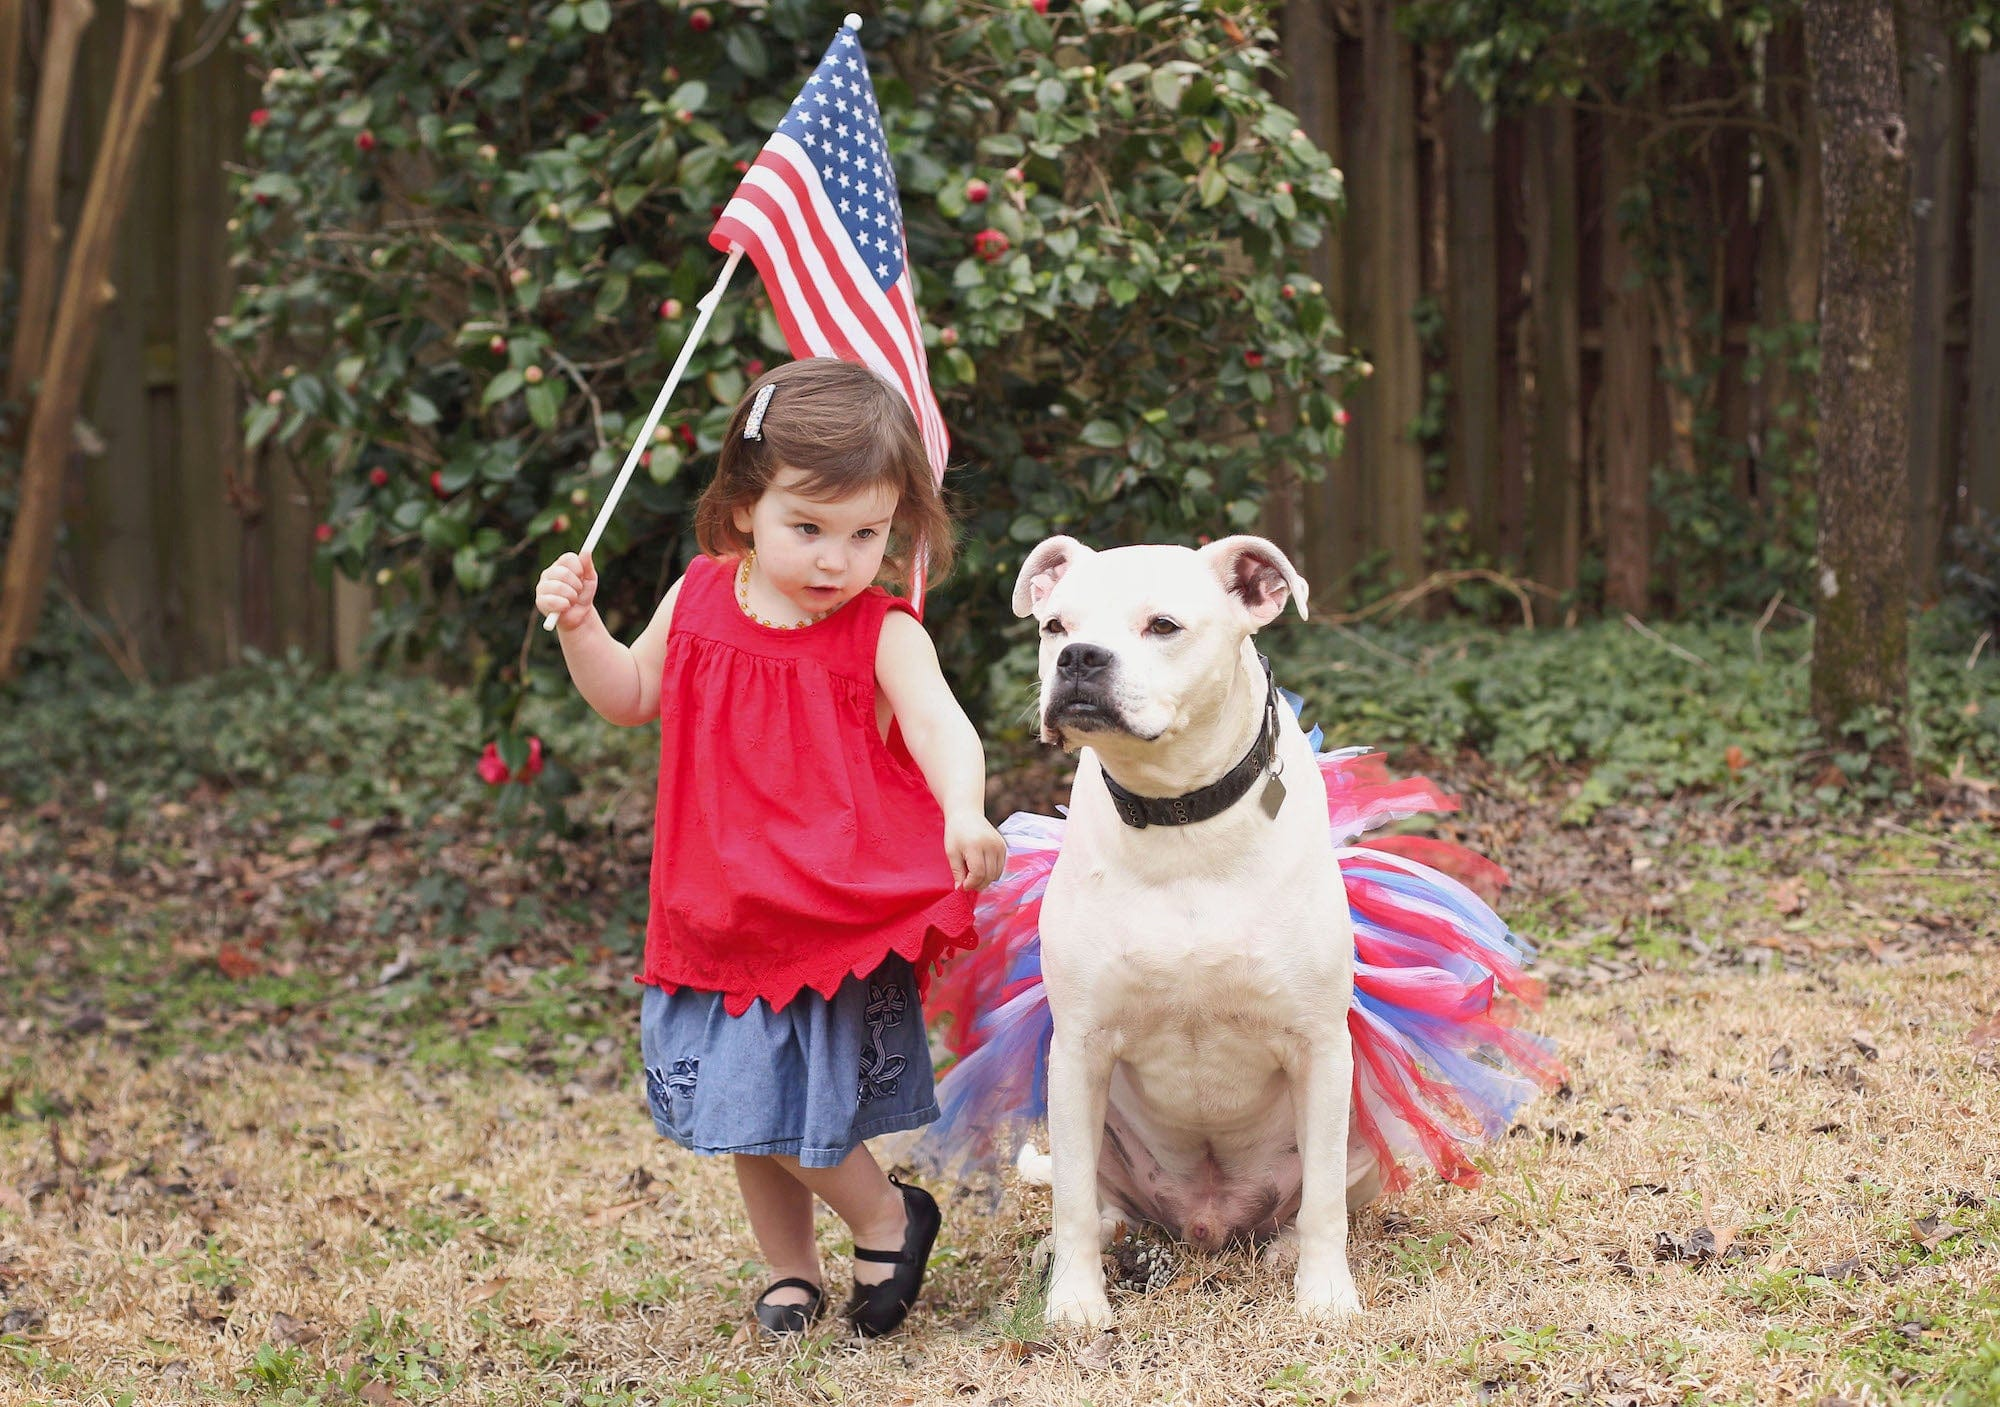 tutu joli 4h of July dog tutu skirt, red white and blue dog tutu xs, blue dog tutu s, red dog tutu size m, white dog tutu size L, independence day dog tutu size xl, large dog tutu size xxl, 4th of july dog tutu size xxxl. large dog tutu american holiday, dog 4th of july tutu and accessories, dog running outfit, american flag pet tutus, american pet costume, pet dress red white blue, halloween dog tutu, birthday tutu for dogs, christmas tutu for dogs, dog christms stuffers